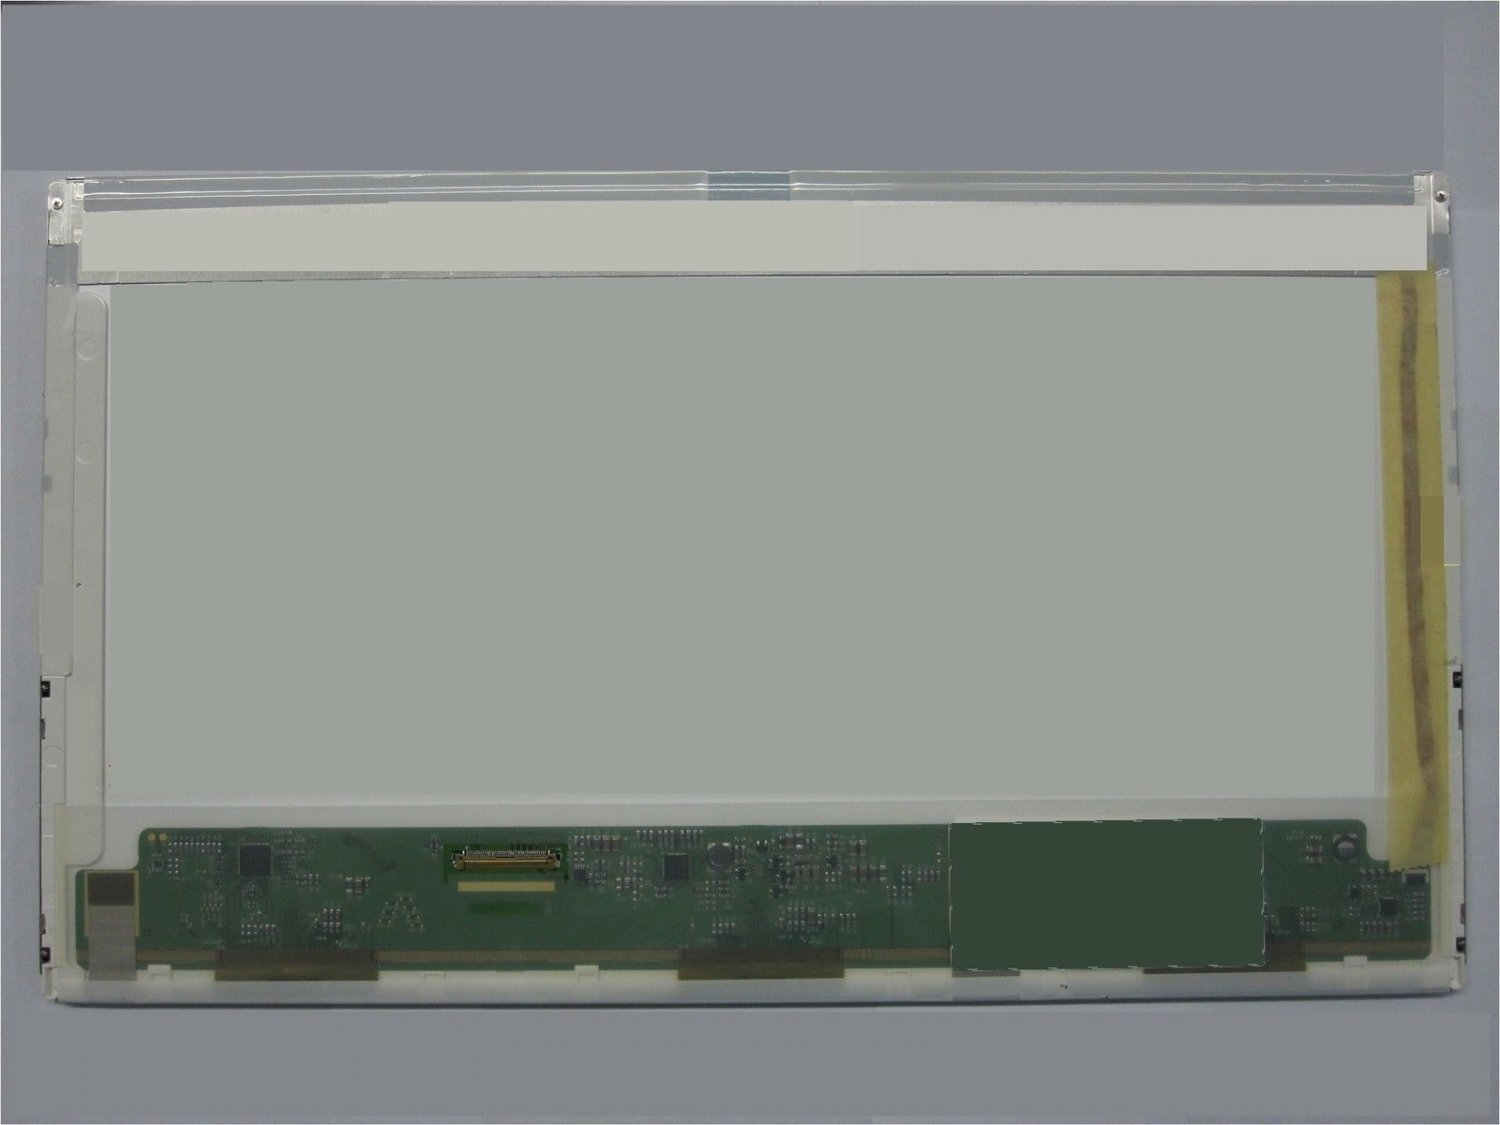 LCD SCREEN FOR CHUNGHWA CLAA156WB13A 15.6